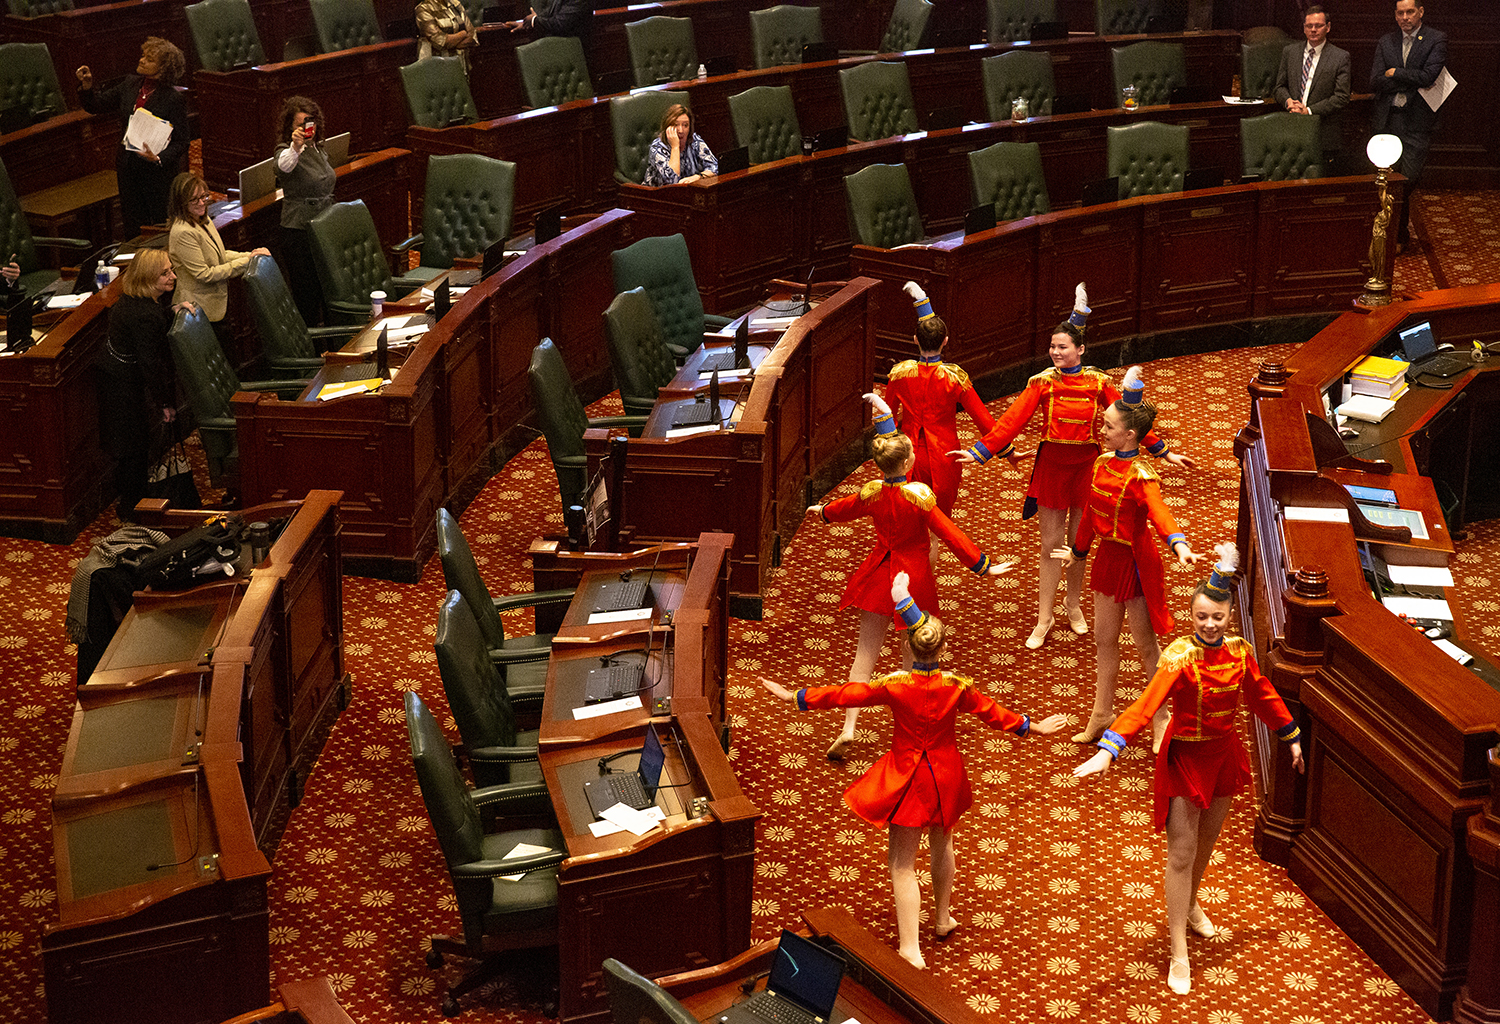 Members of the Springfield Youth Performance Group performed in the Illinois House Chamber before its veto session began Wednesday, Nov. 28, 2018 at the Capitol in Springfield, Ill. The presentation was part of an arts showcase sponsored by the House Museum, Arts & Cultural Enhancement Committee. The girls are, clockwise from lower left, Claire Sagins, Aislyn Grant, Ella Parkinson, Catherine Gardner, Mia Marcy and Ava Parkinson. [Rich Saal/The State Journal-Register]